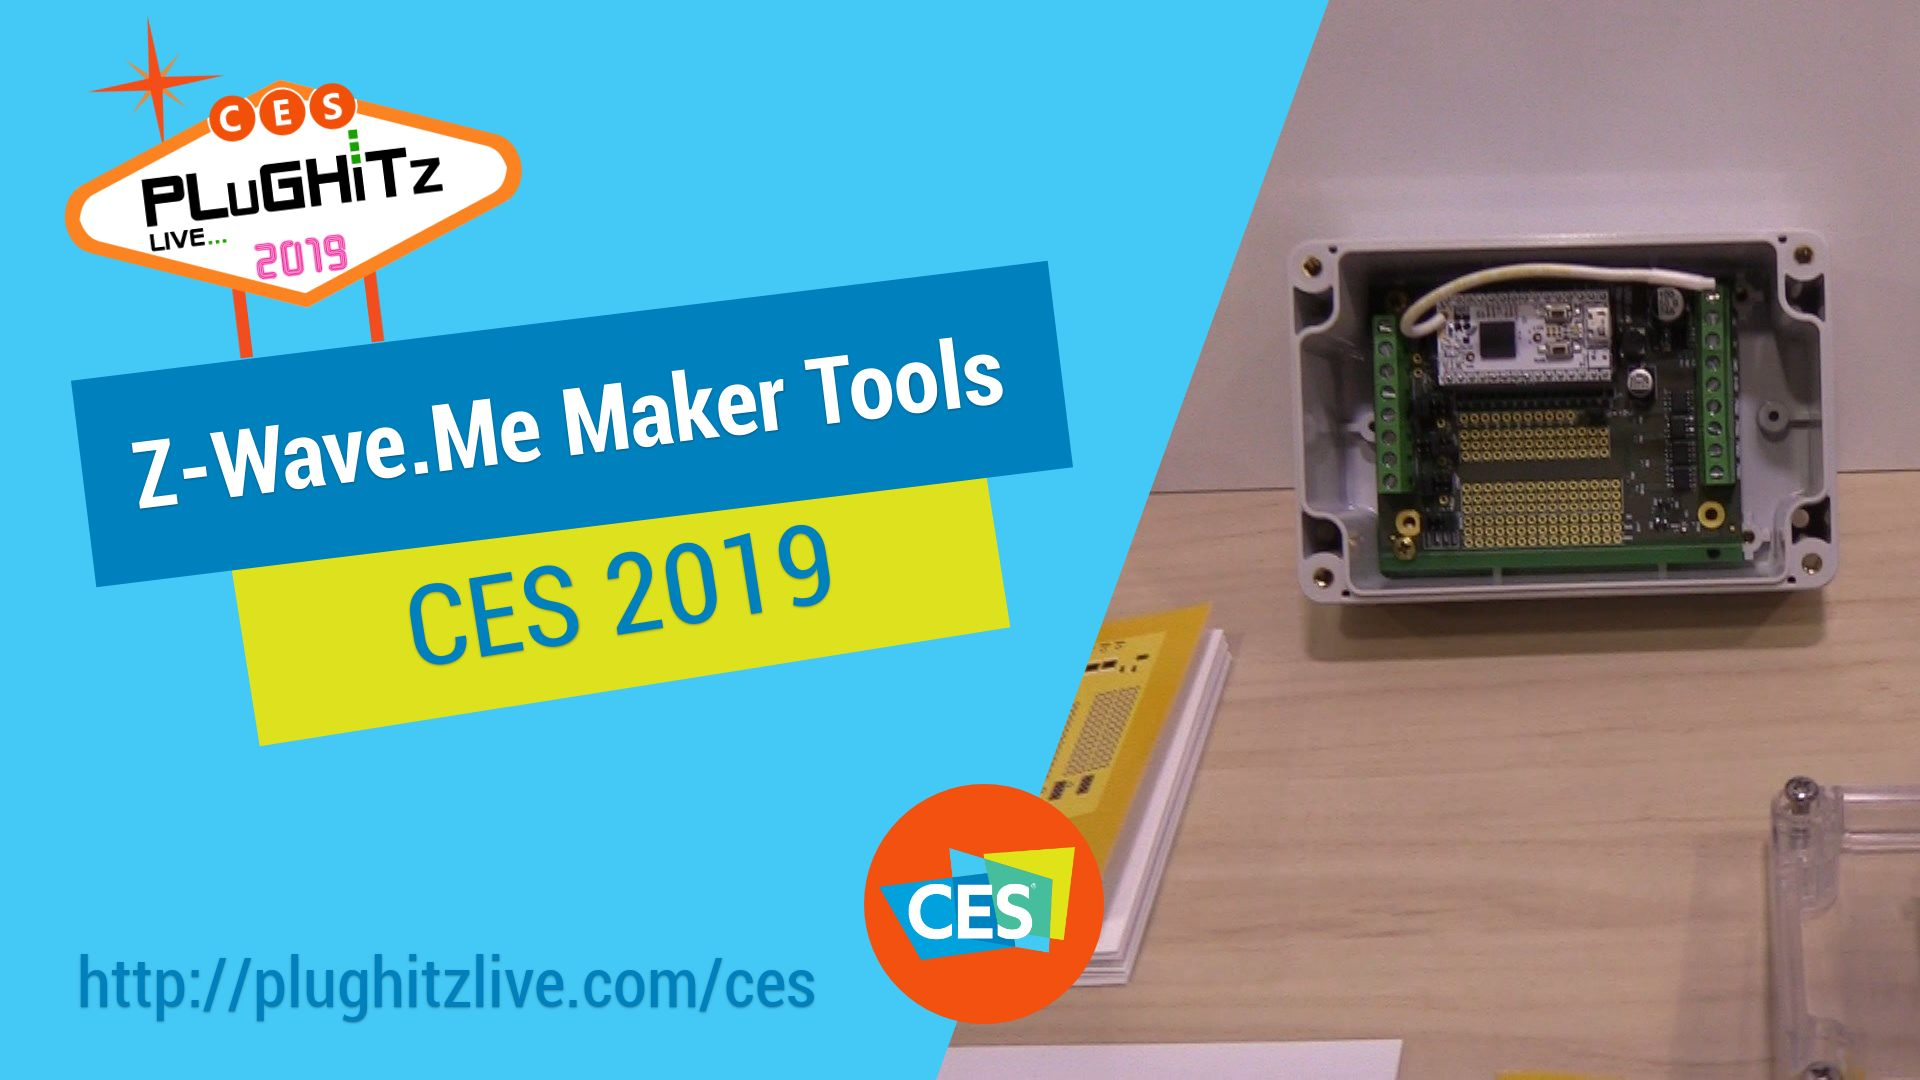 Z-Wave Me has products to enable makers to join the Z-Wave